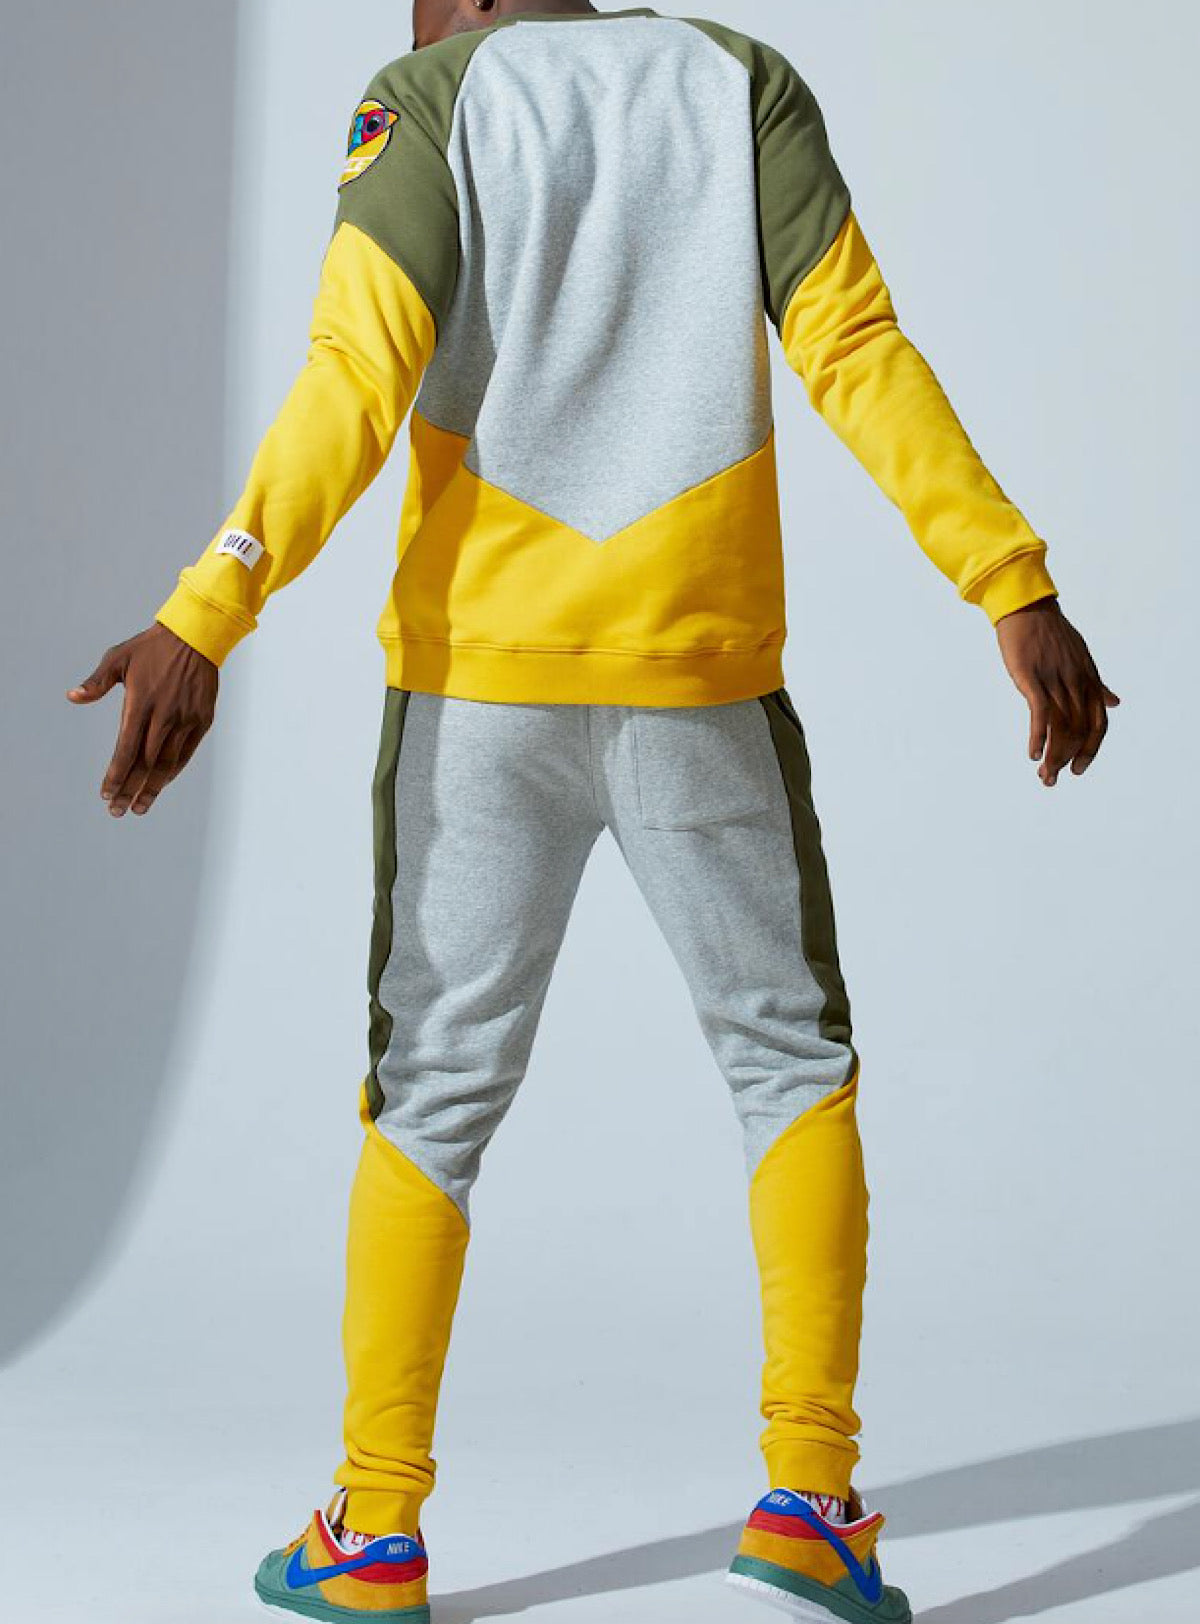 Fifh Loop Sweatsuit - Mars - Grey With Olive And Yellow - FLC011